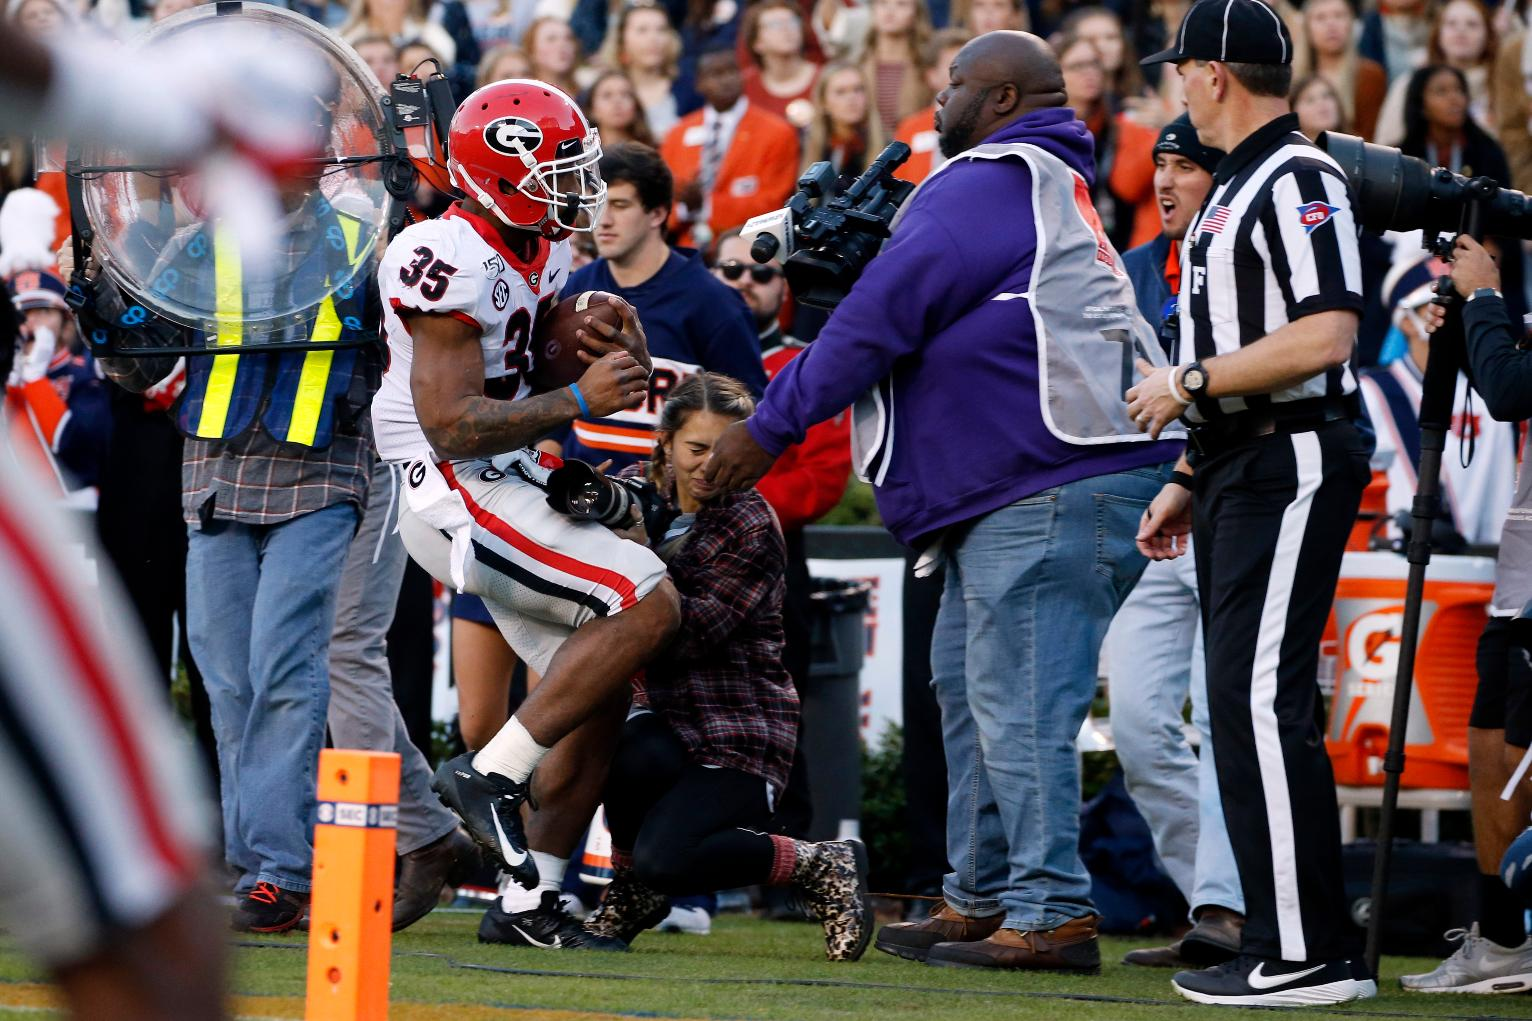 Photographer Hit In Georgia Auburn Game Out Of Hospital Sports News US News